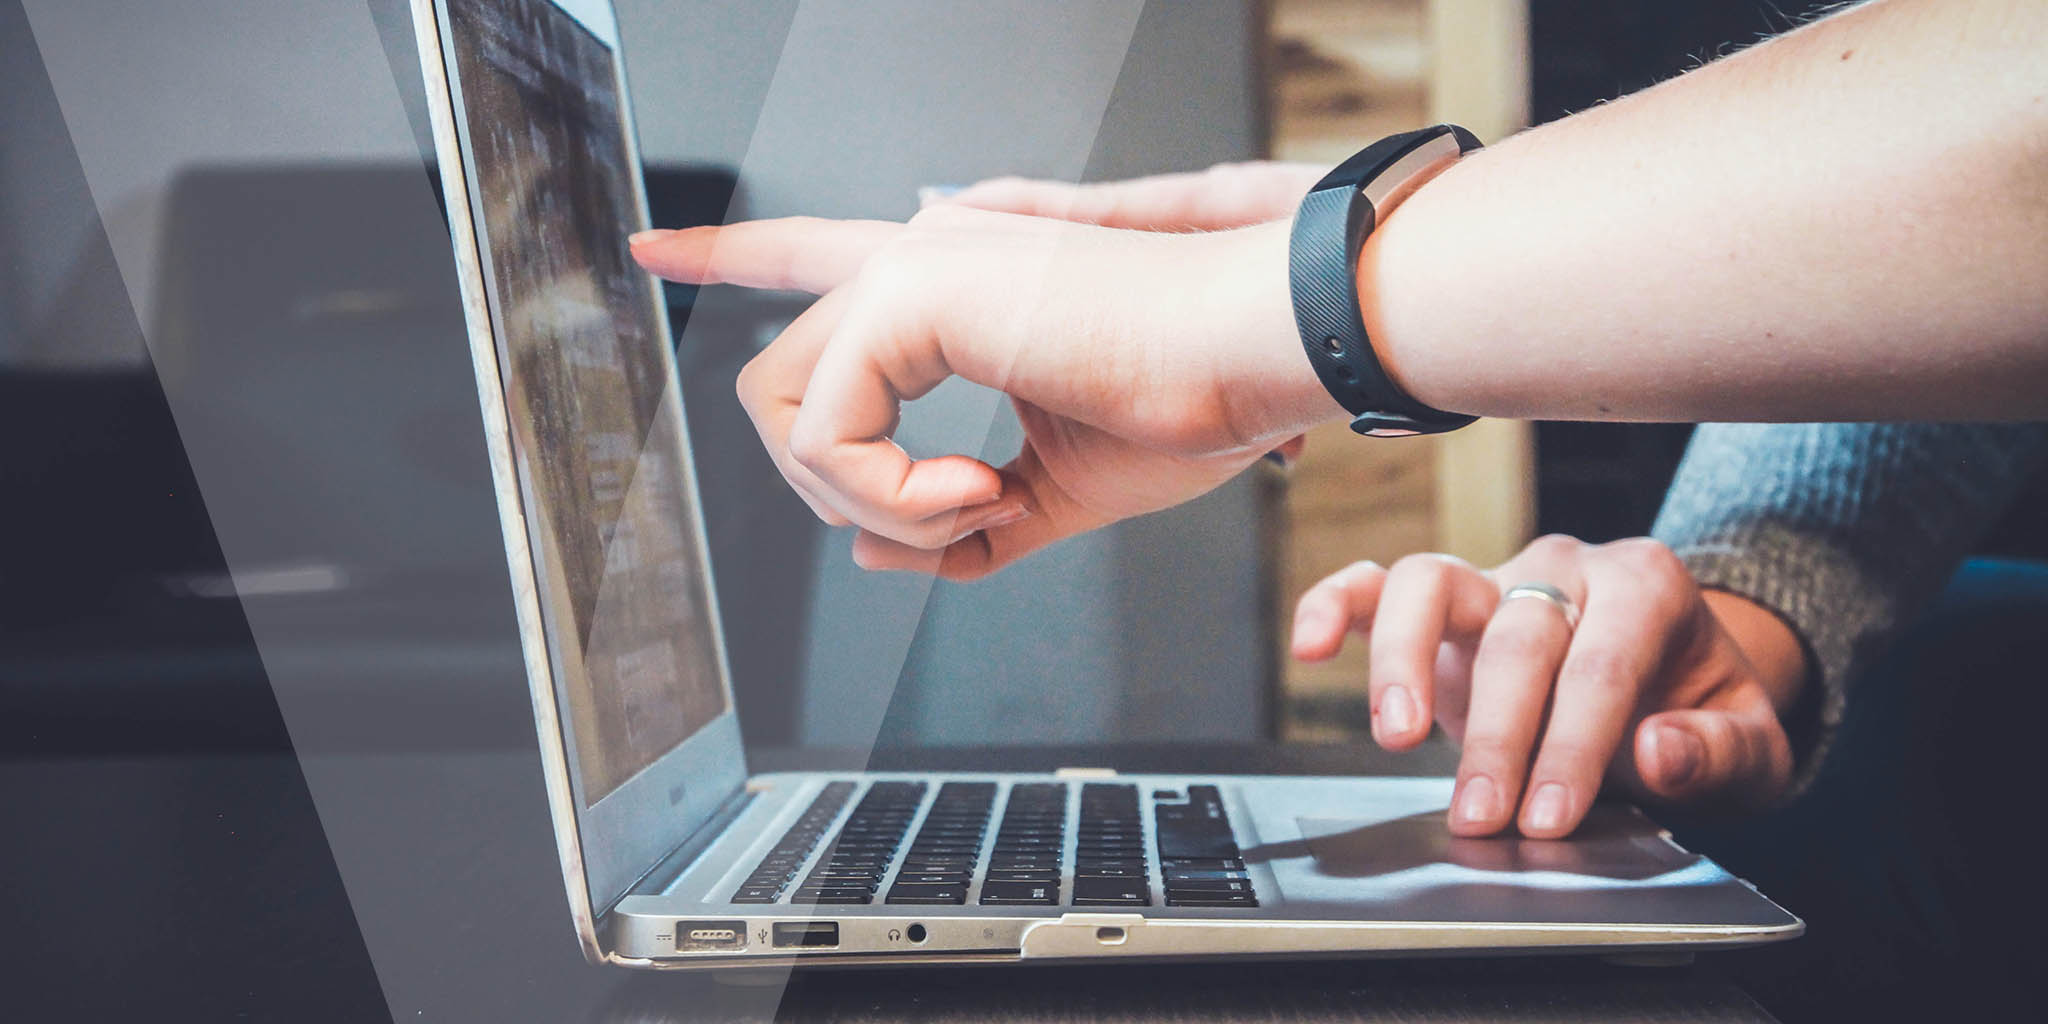 Close up image of a laptop with people pointing at the screen